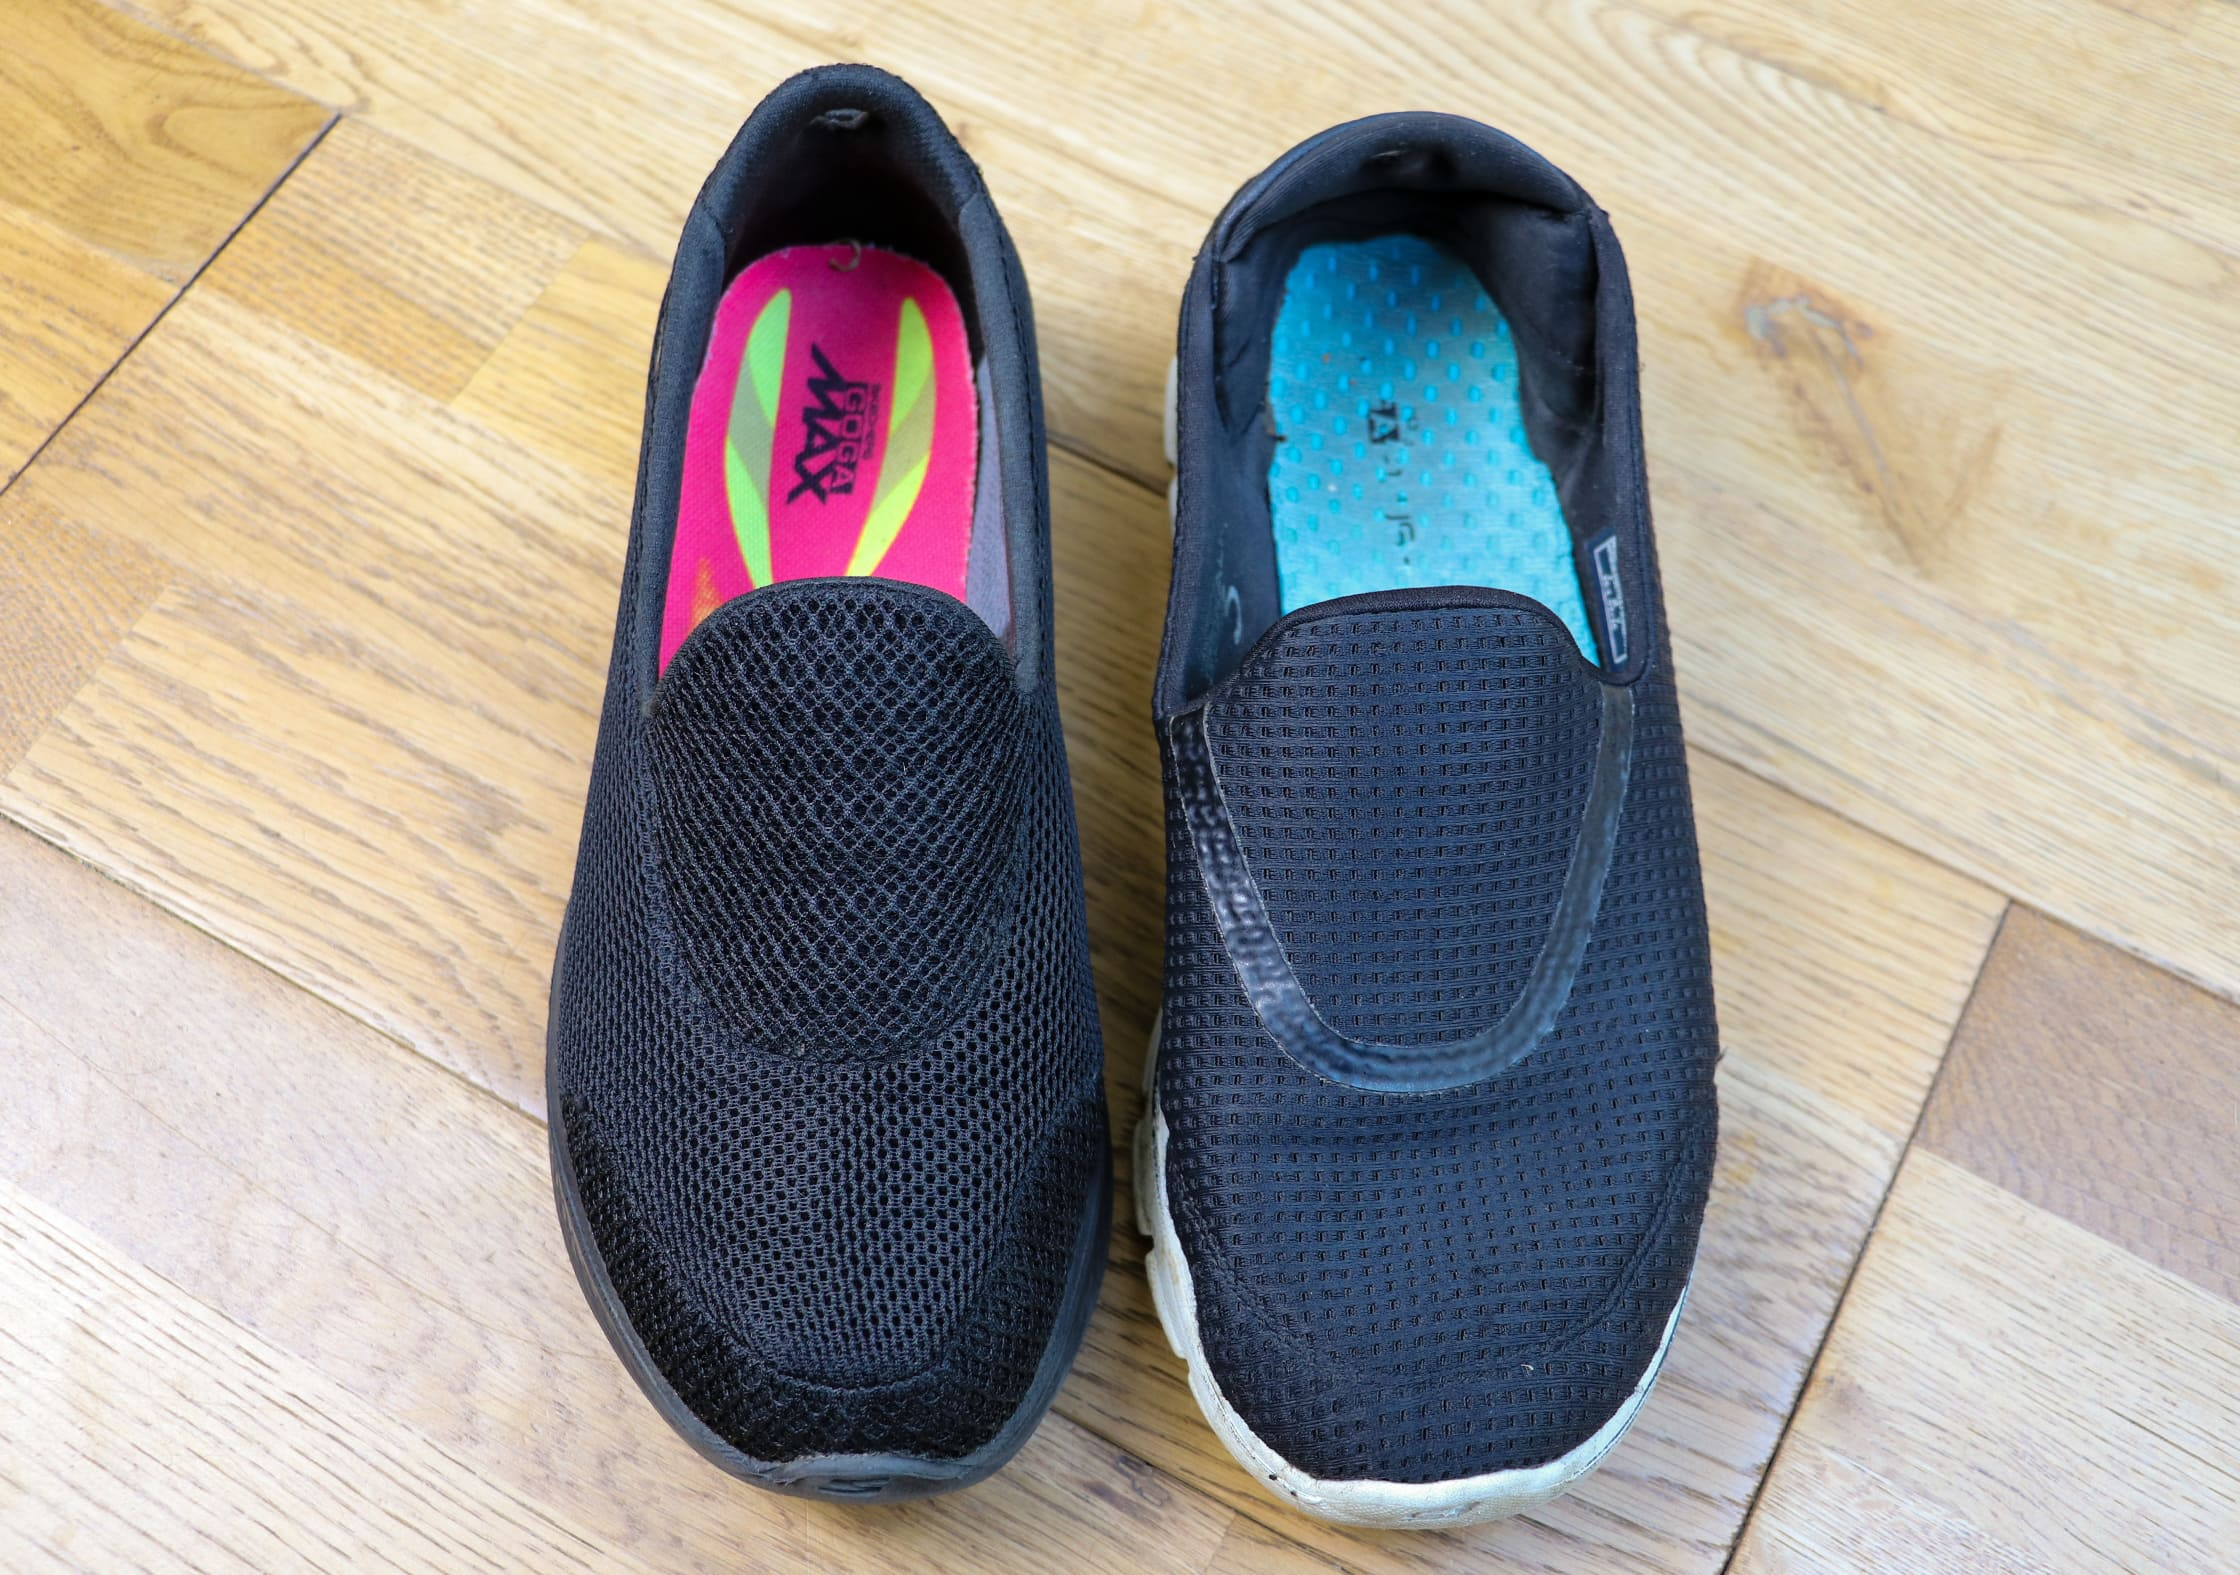 Skechers GOwalk 4 Travel Shoes Review | Pack Hacker